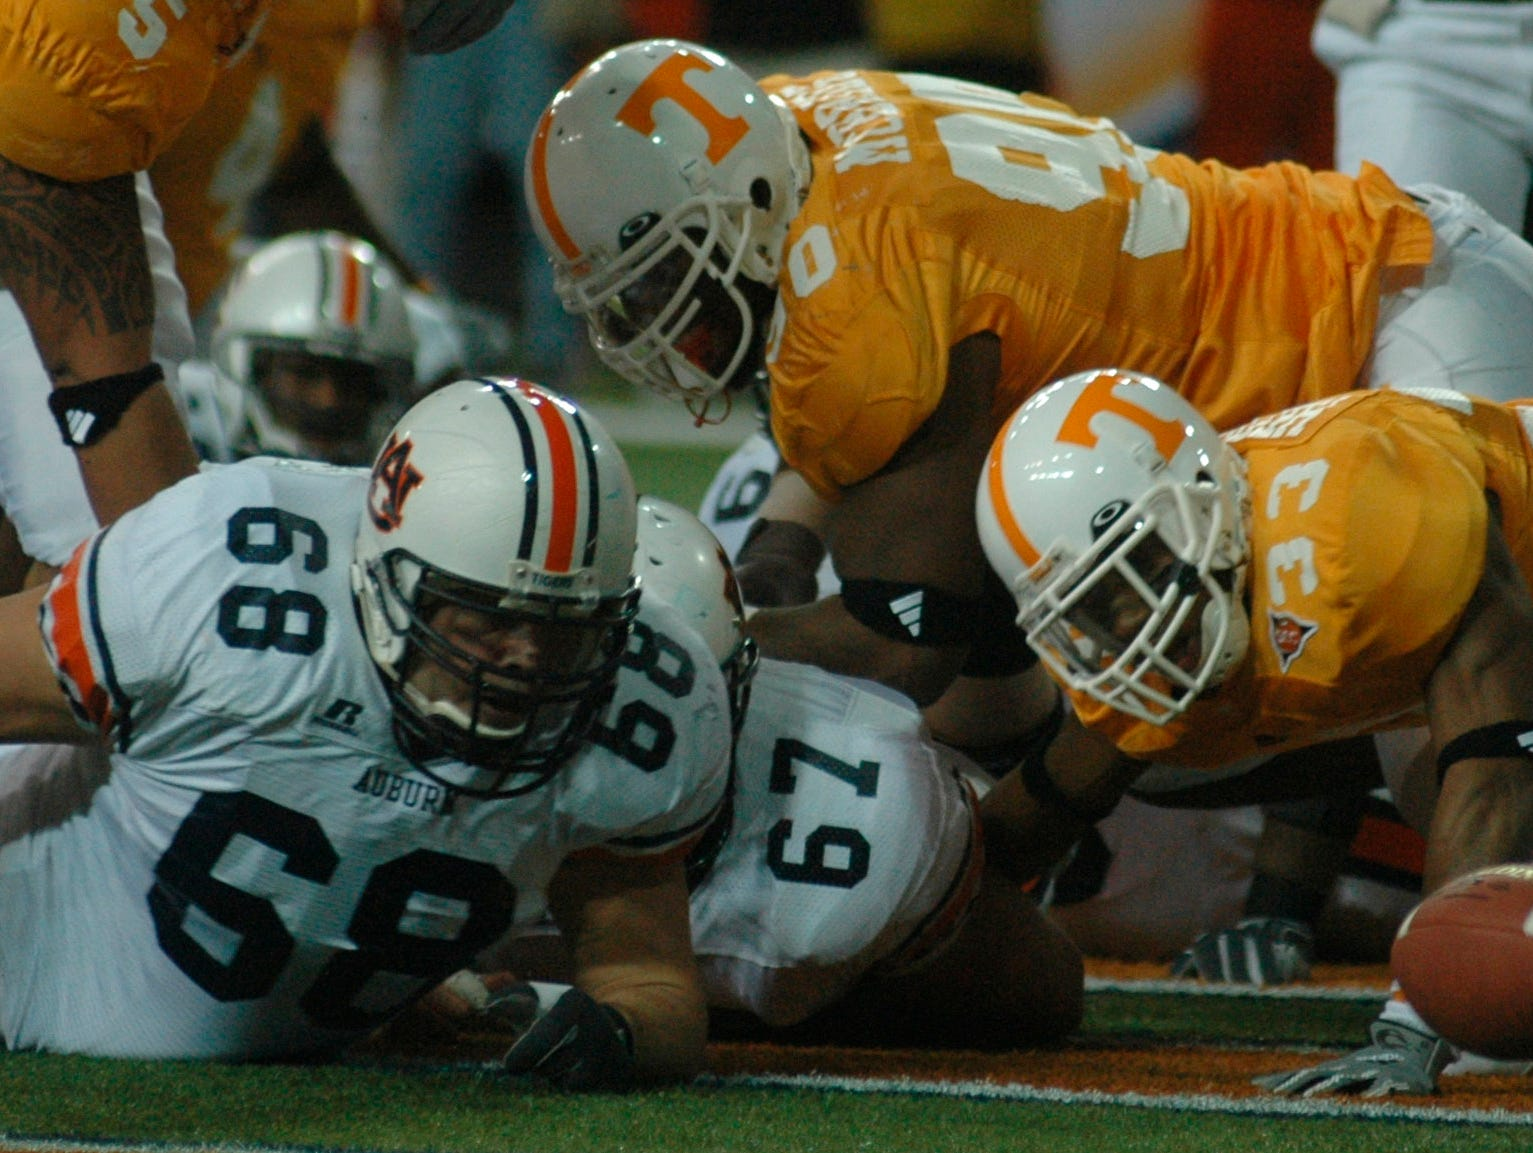 Tennessee cornerback Jonathan Hefney (33) eyes a goal line fumble by Auburn running back Carnell Williams during the Southeastern Conference championship game Saturday in Atlanta. Auburn's Cole Bennett recovered the ball in the end zone to score the Tiger's first touchdown. Auburn's Danny Lindsey, left, and Tennessee's Turk McBride, top, were in on the play. 12/04/2004